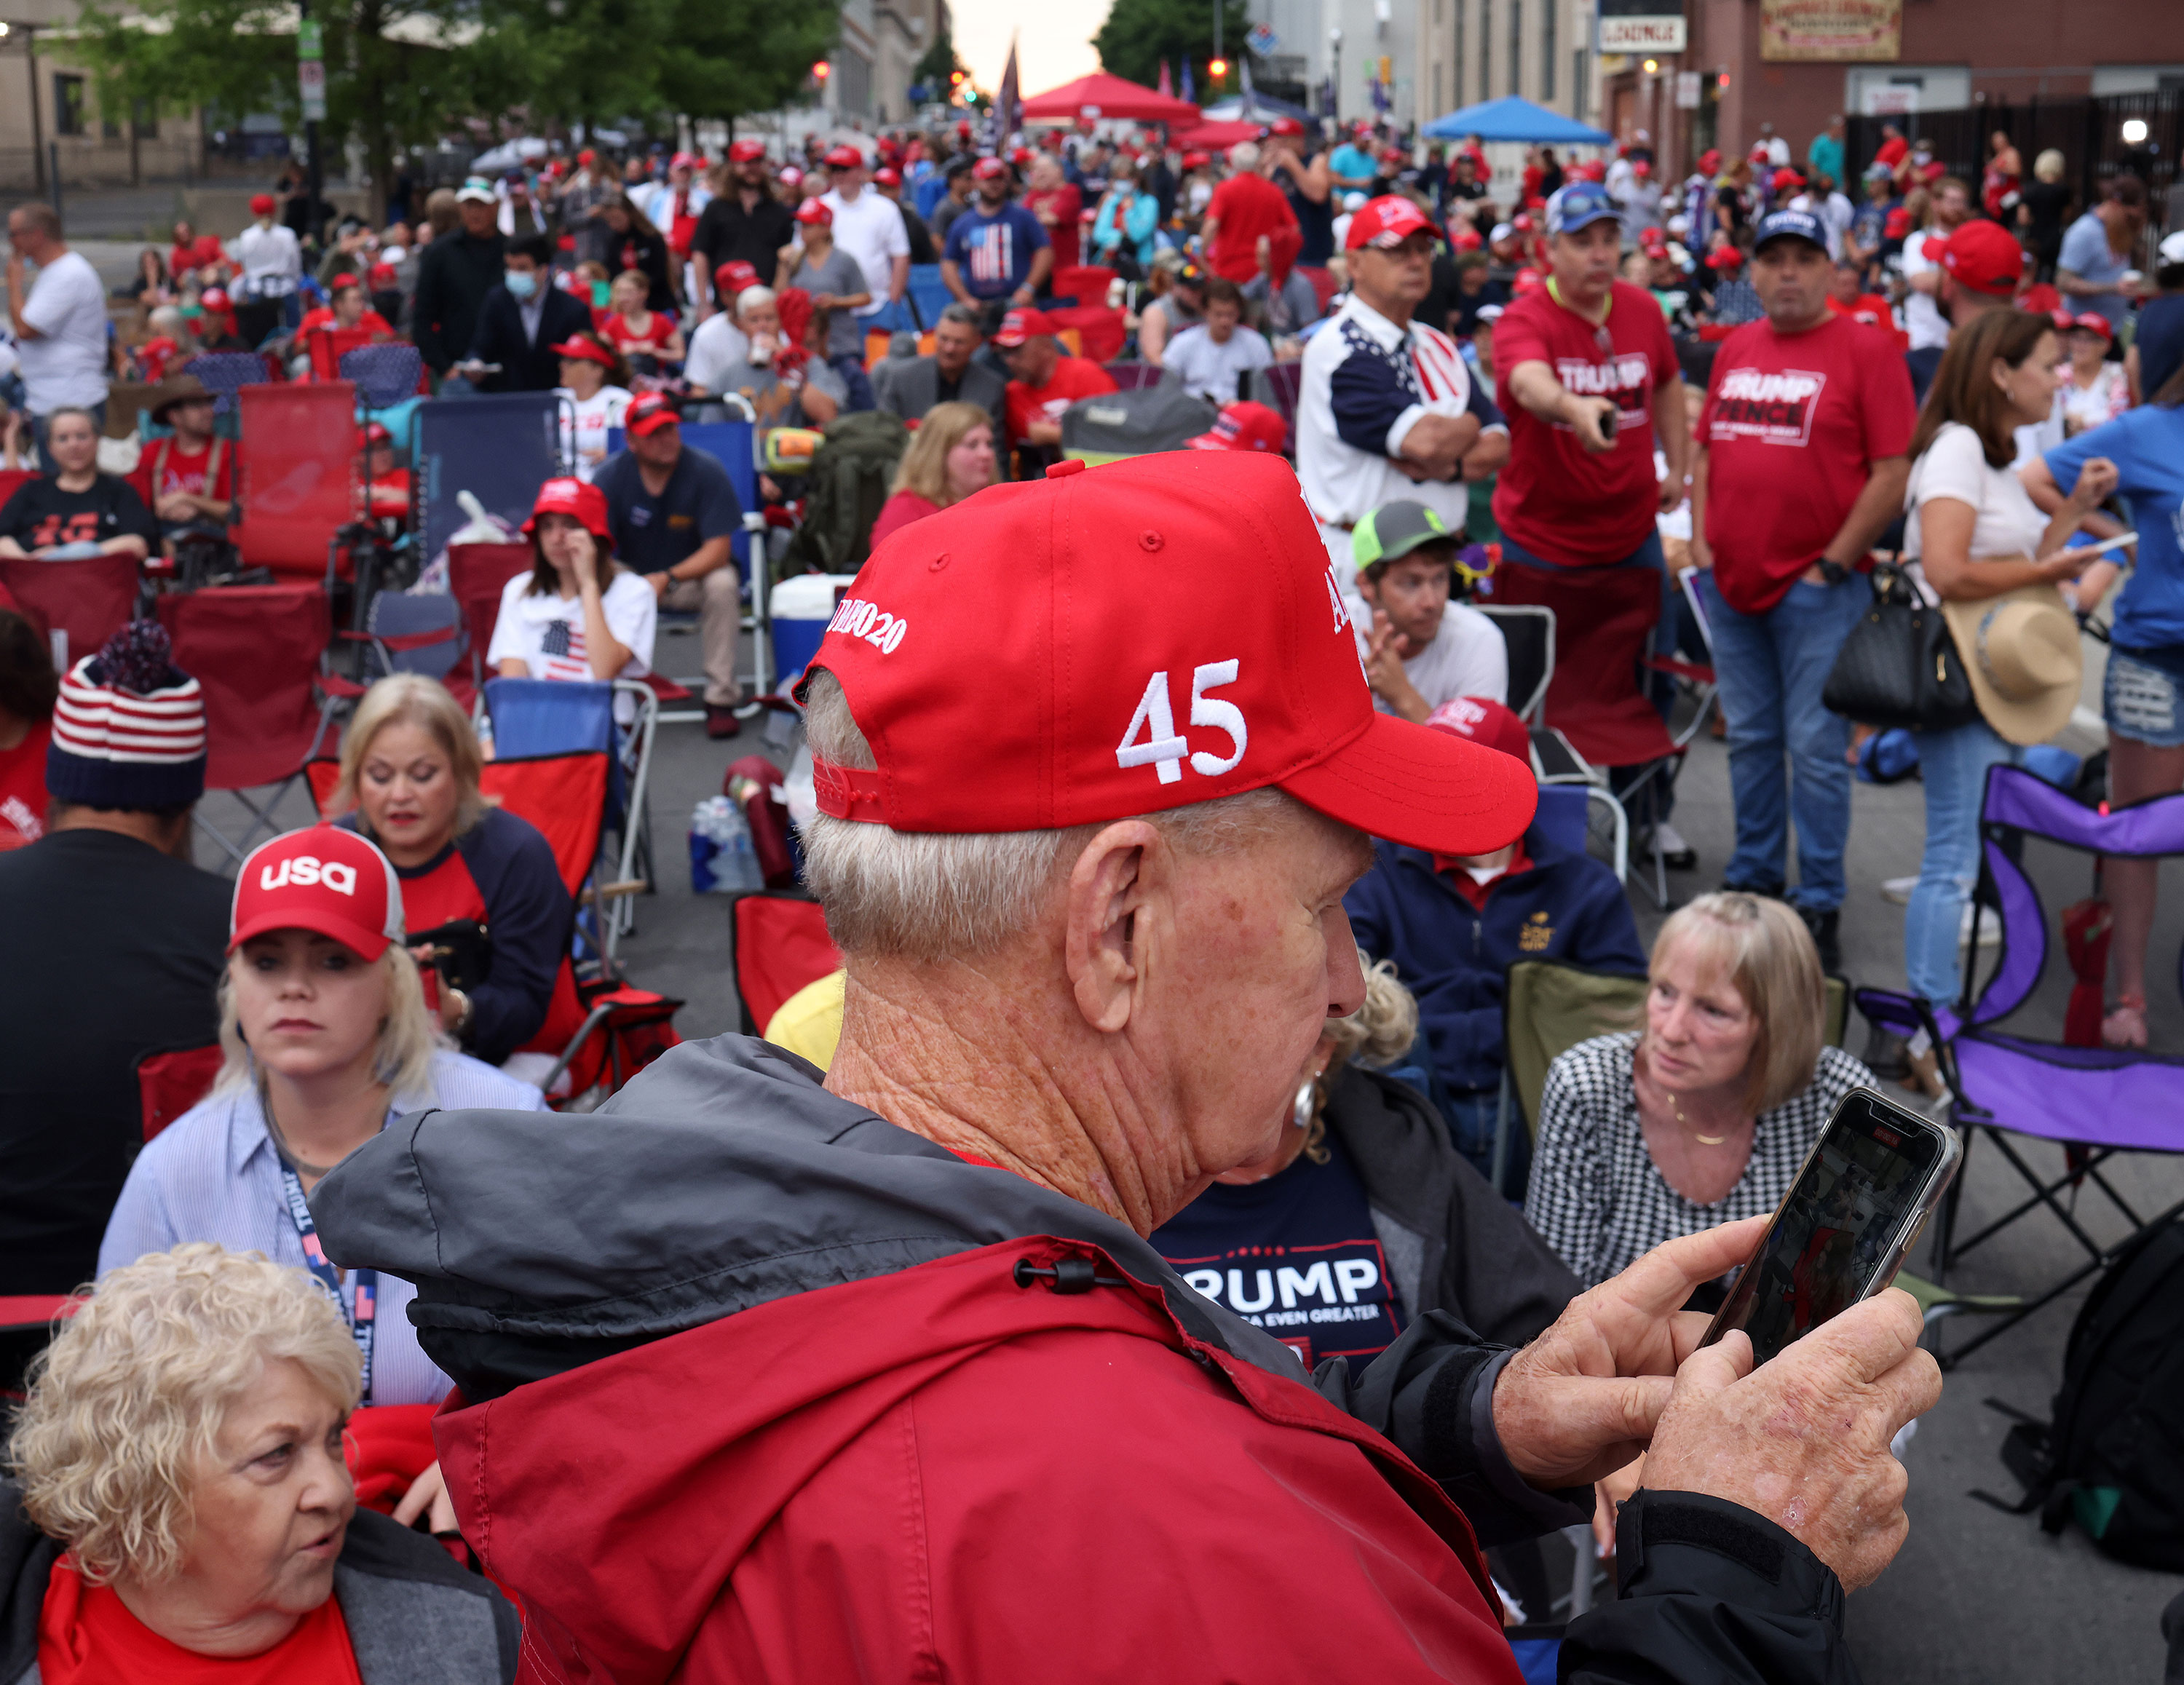 Supporters of President Donald Trump gather to attend his campaign rally in Tulsa, Oklahoma, on June 20.